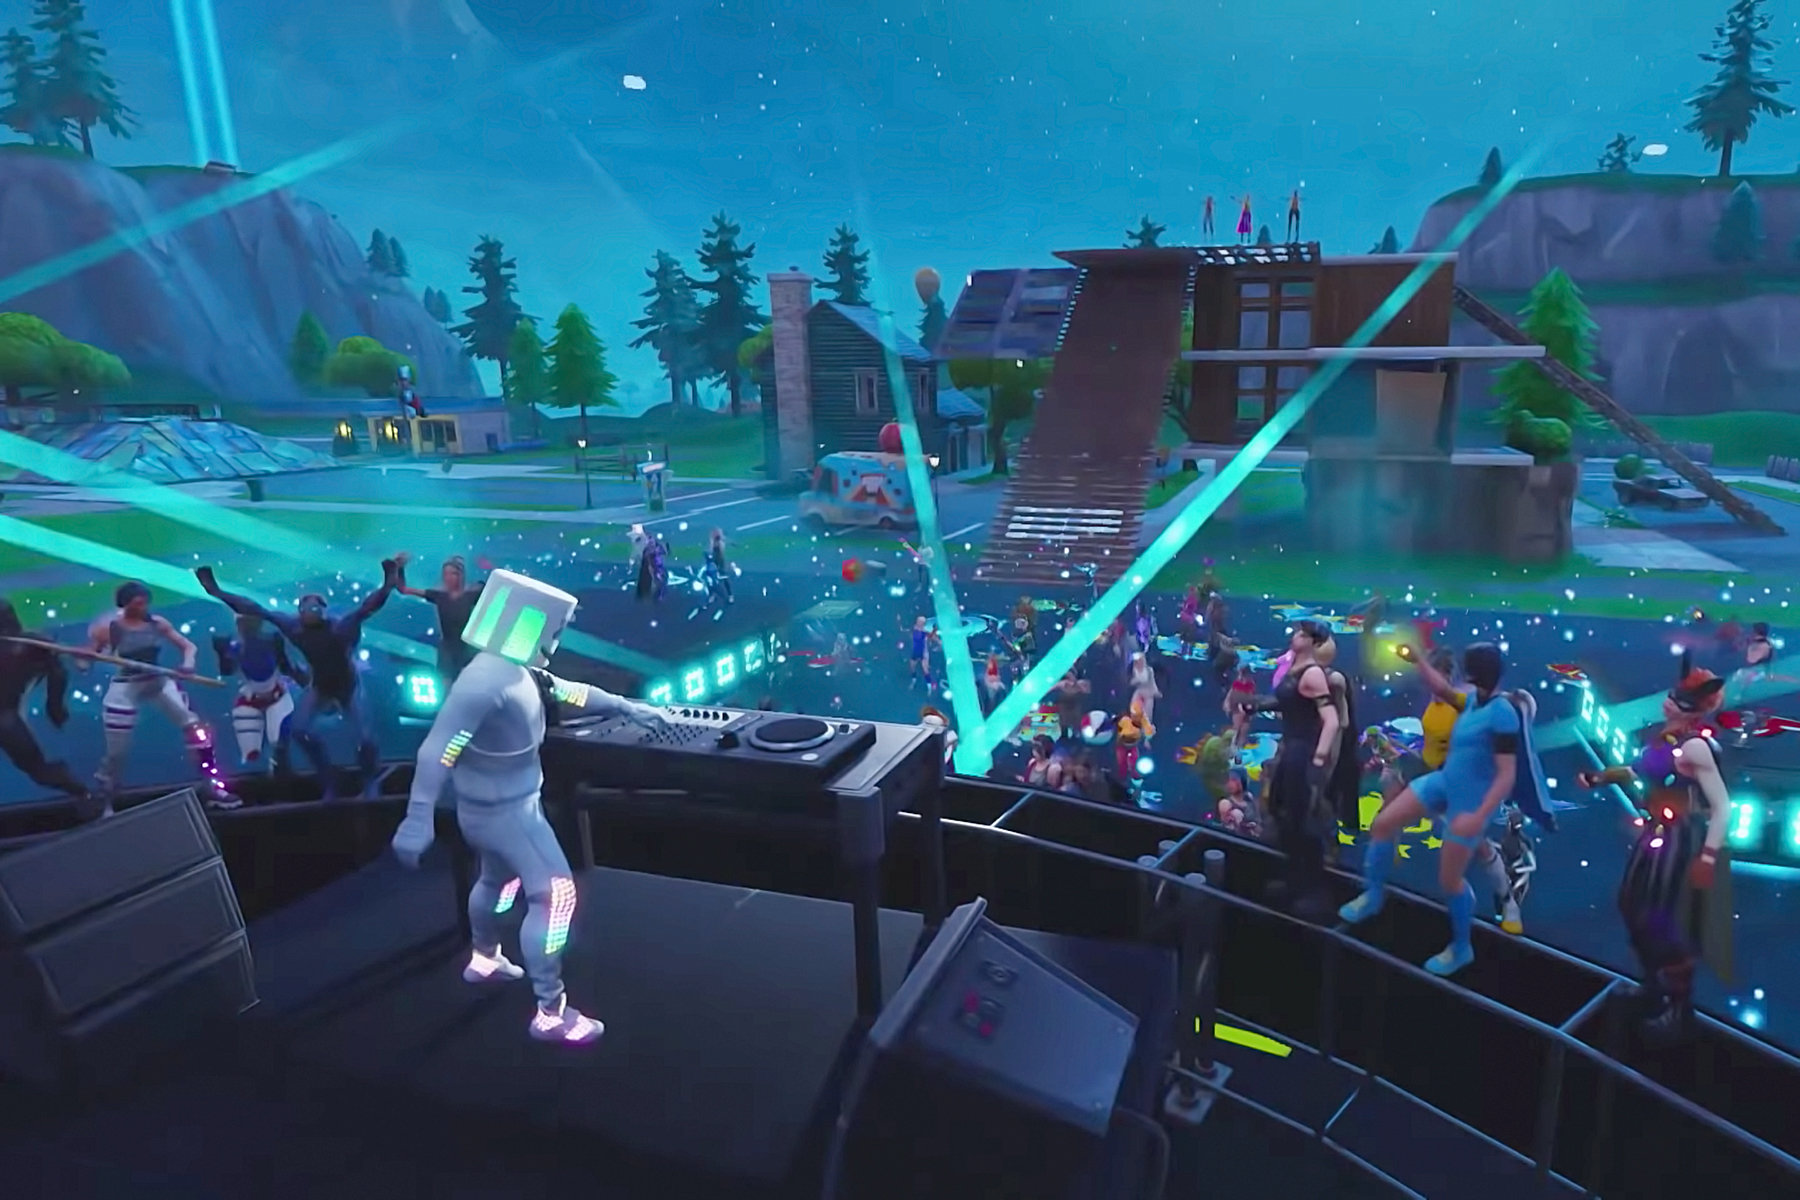 marshmello fortnite concert - how to see how many hours played on fortnite